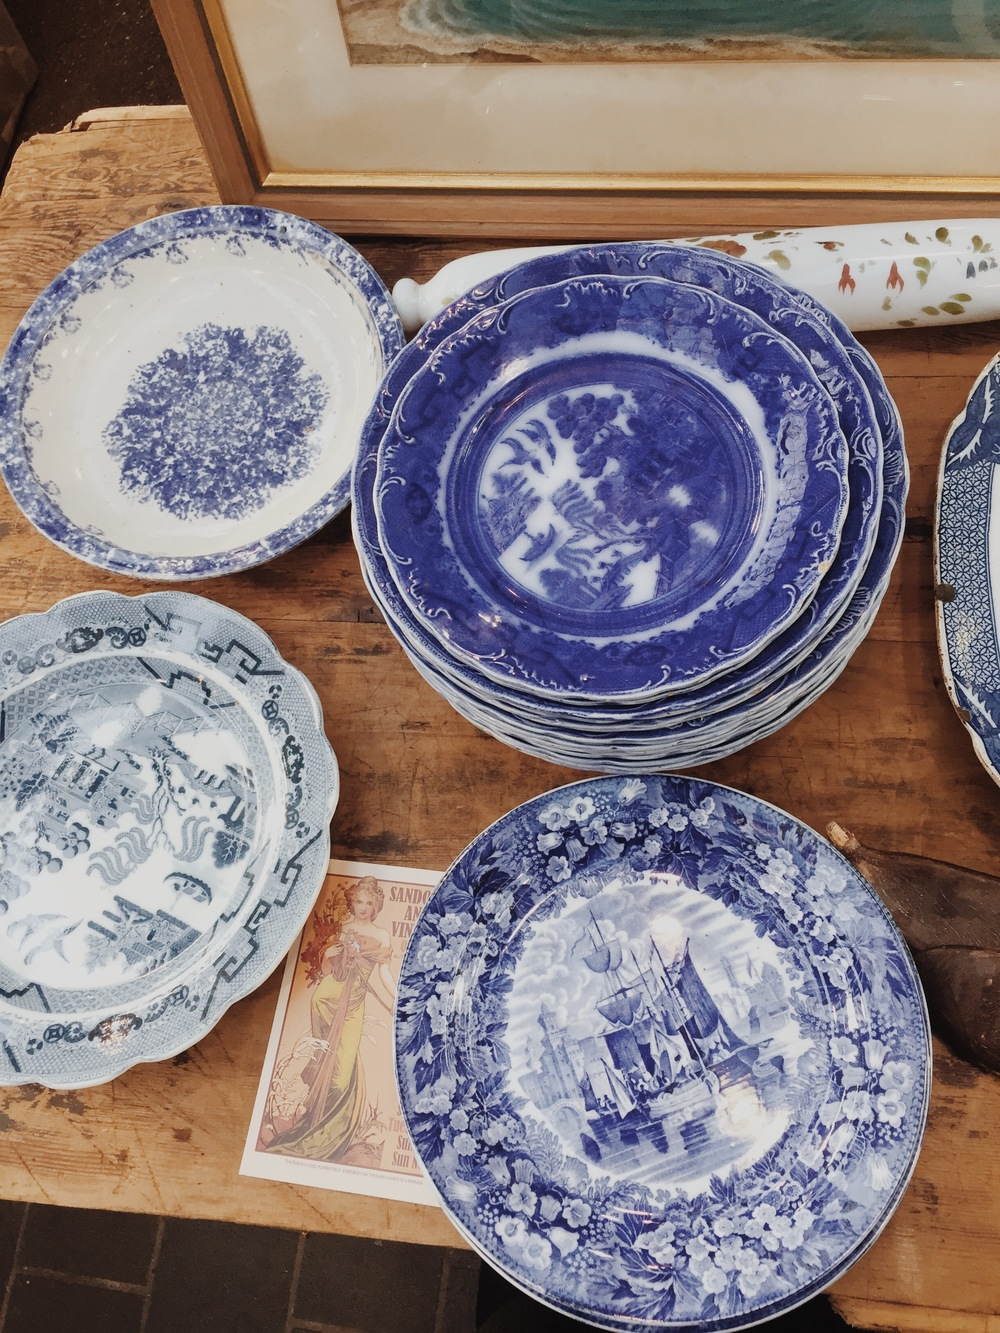 Vintage blue & white china at Spitalfield's Antiques Market